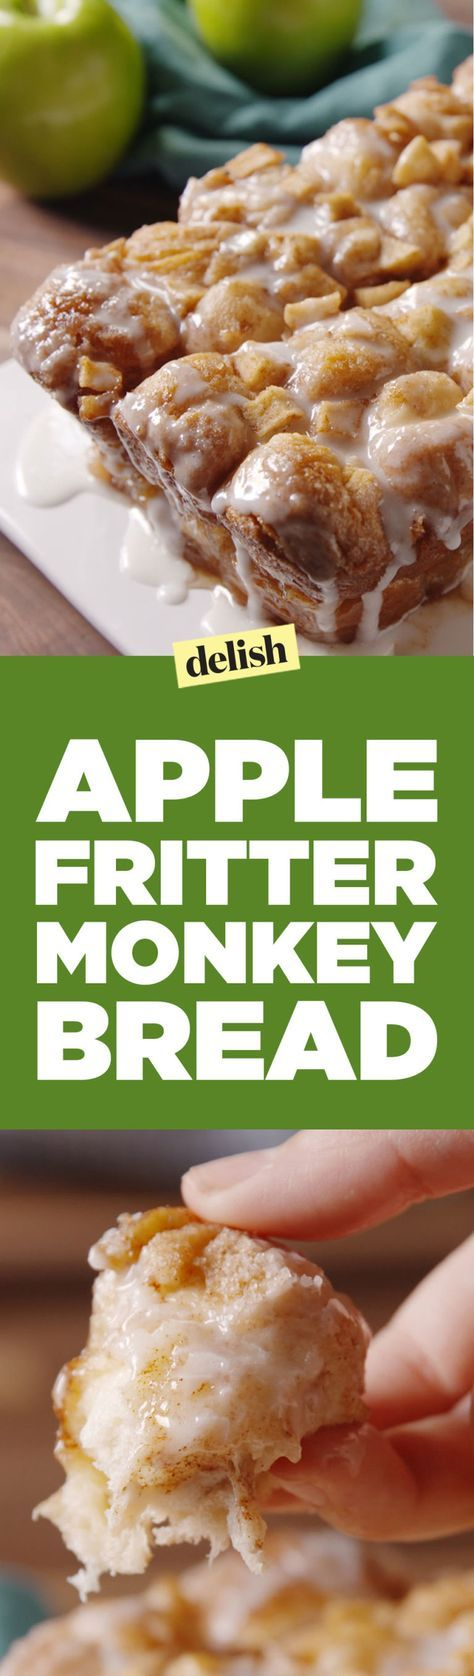 Apple Fritter Monkey Bread  - Delish.com                                                                                                                                                                                 More